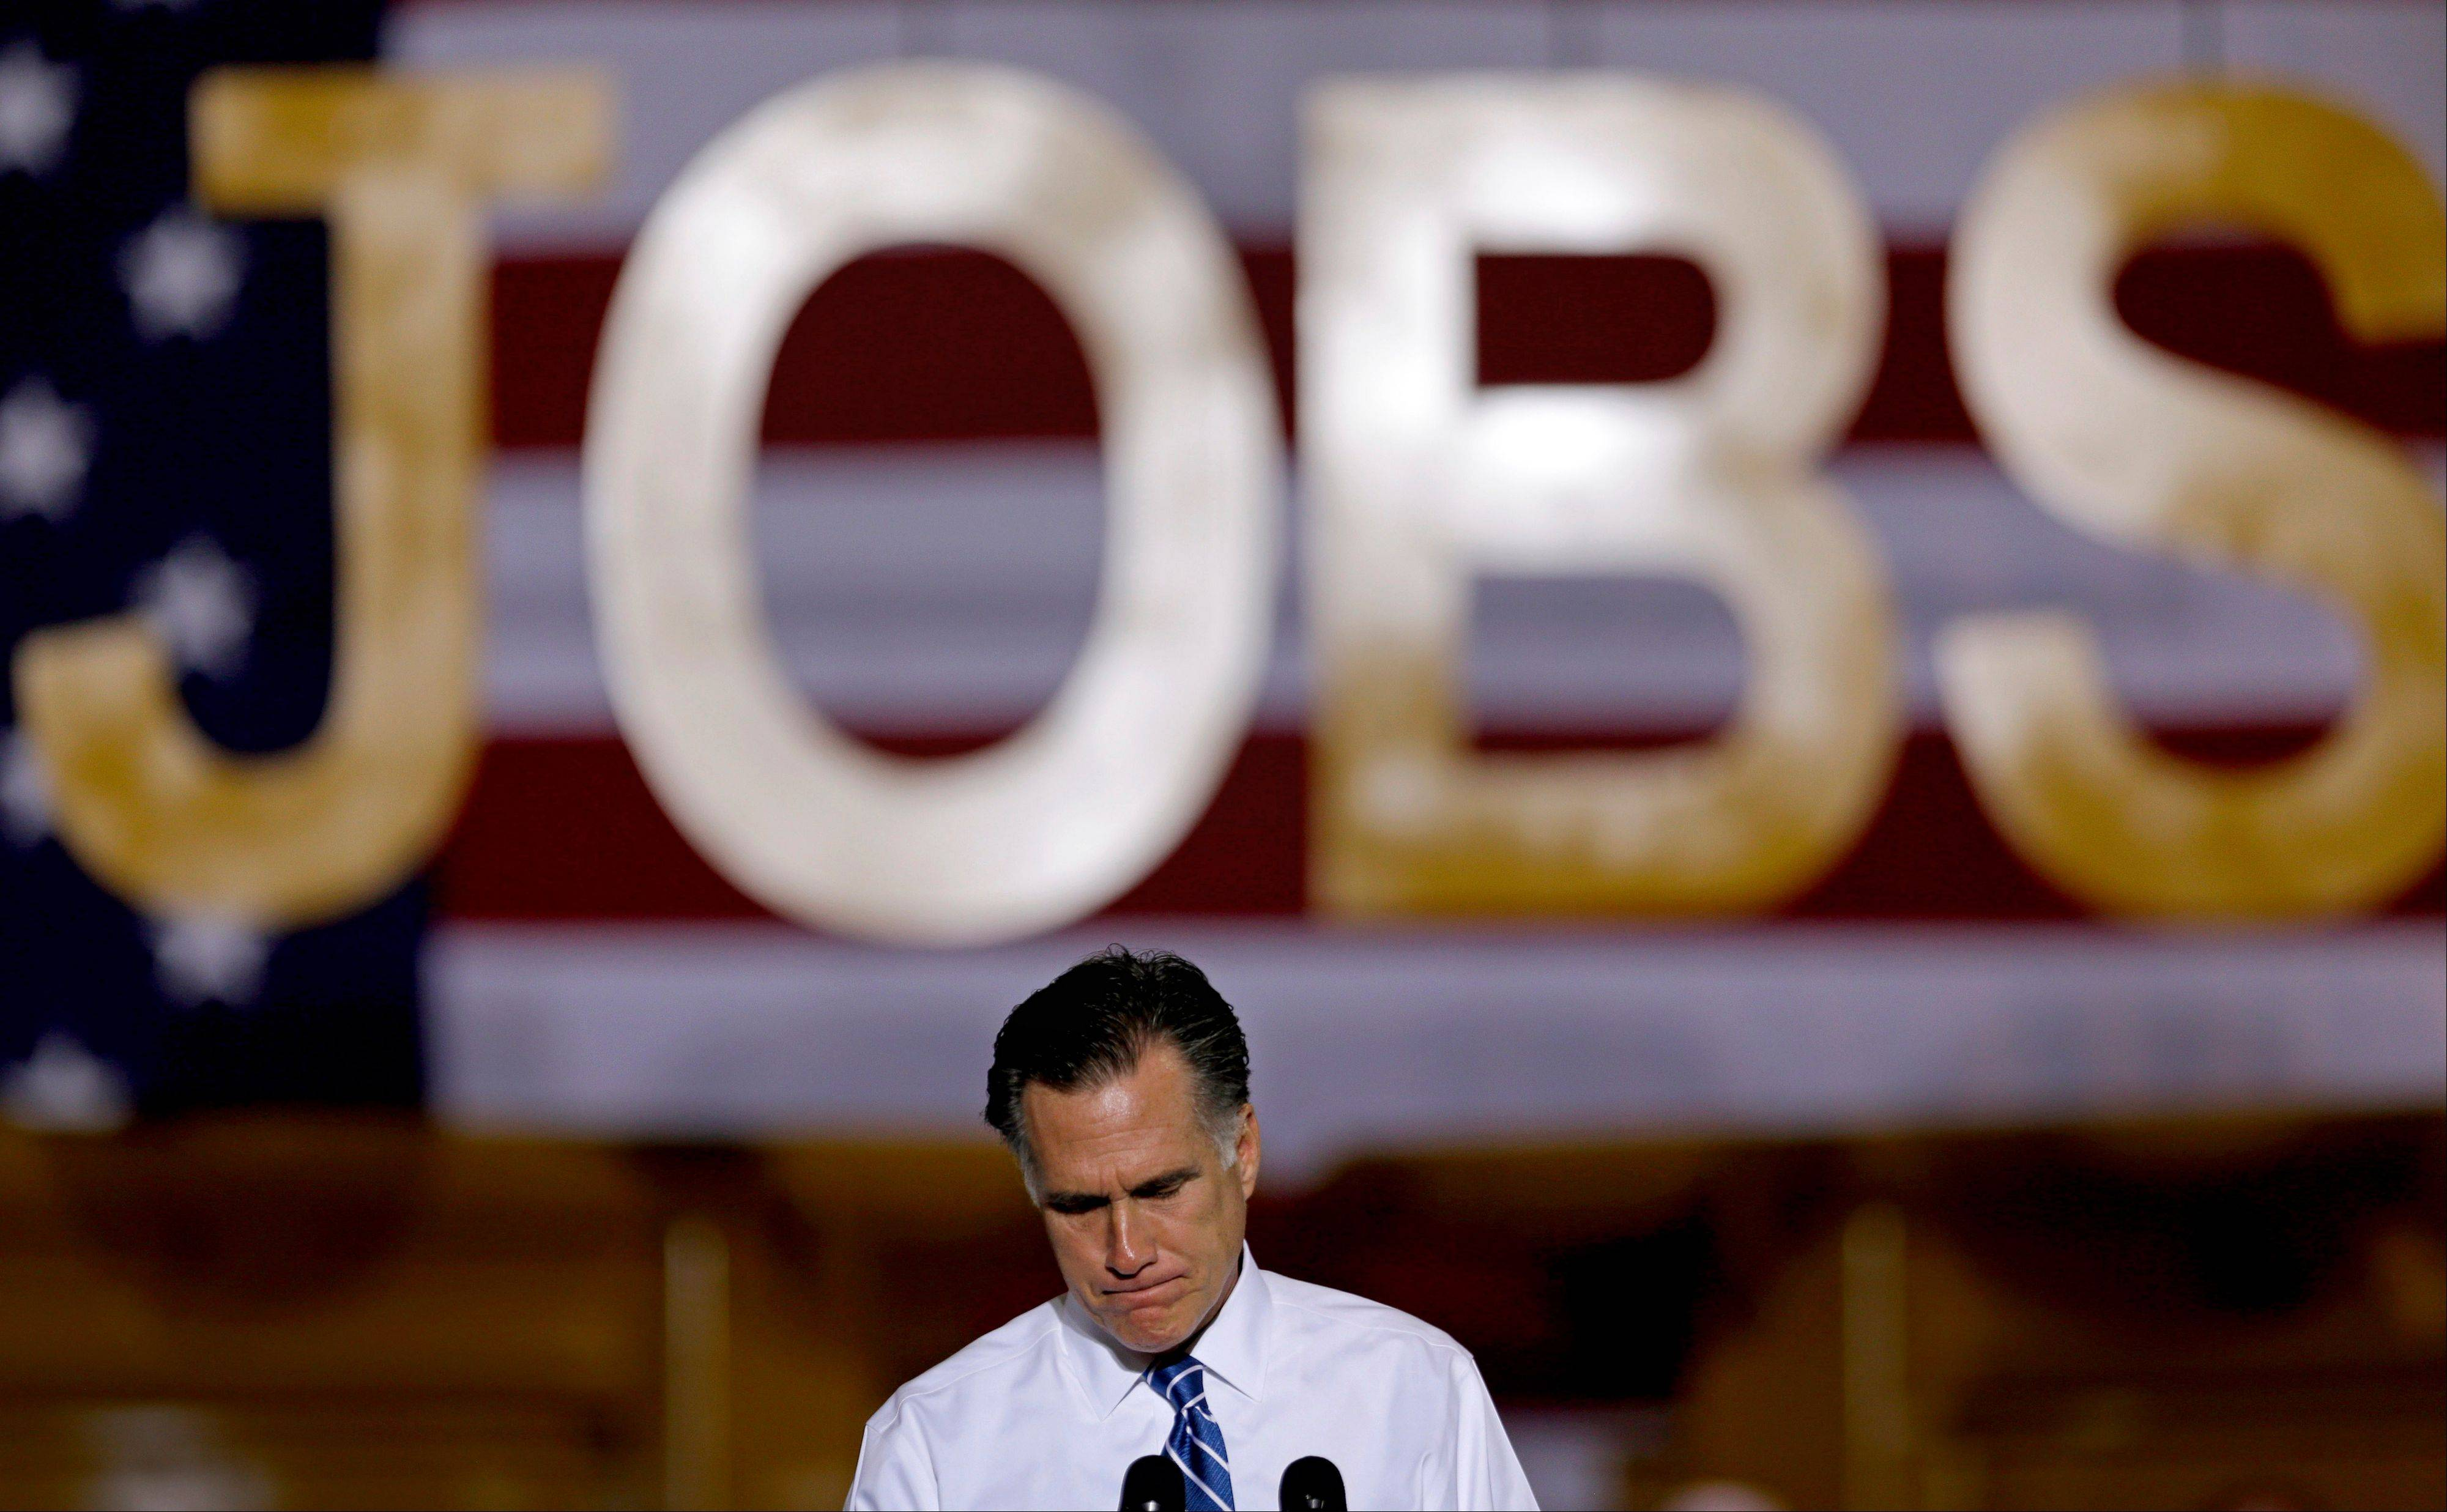 Republican presidential candidate, former Massachusetts Gov. Mitt Romney, could inherit Joe Biden as his vice president unless he wins the elction outright.